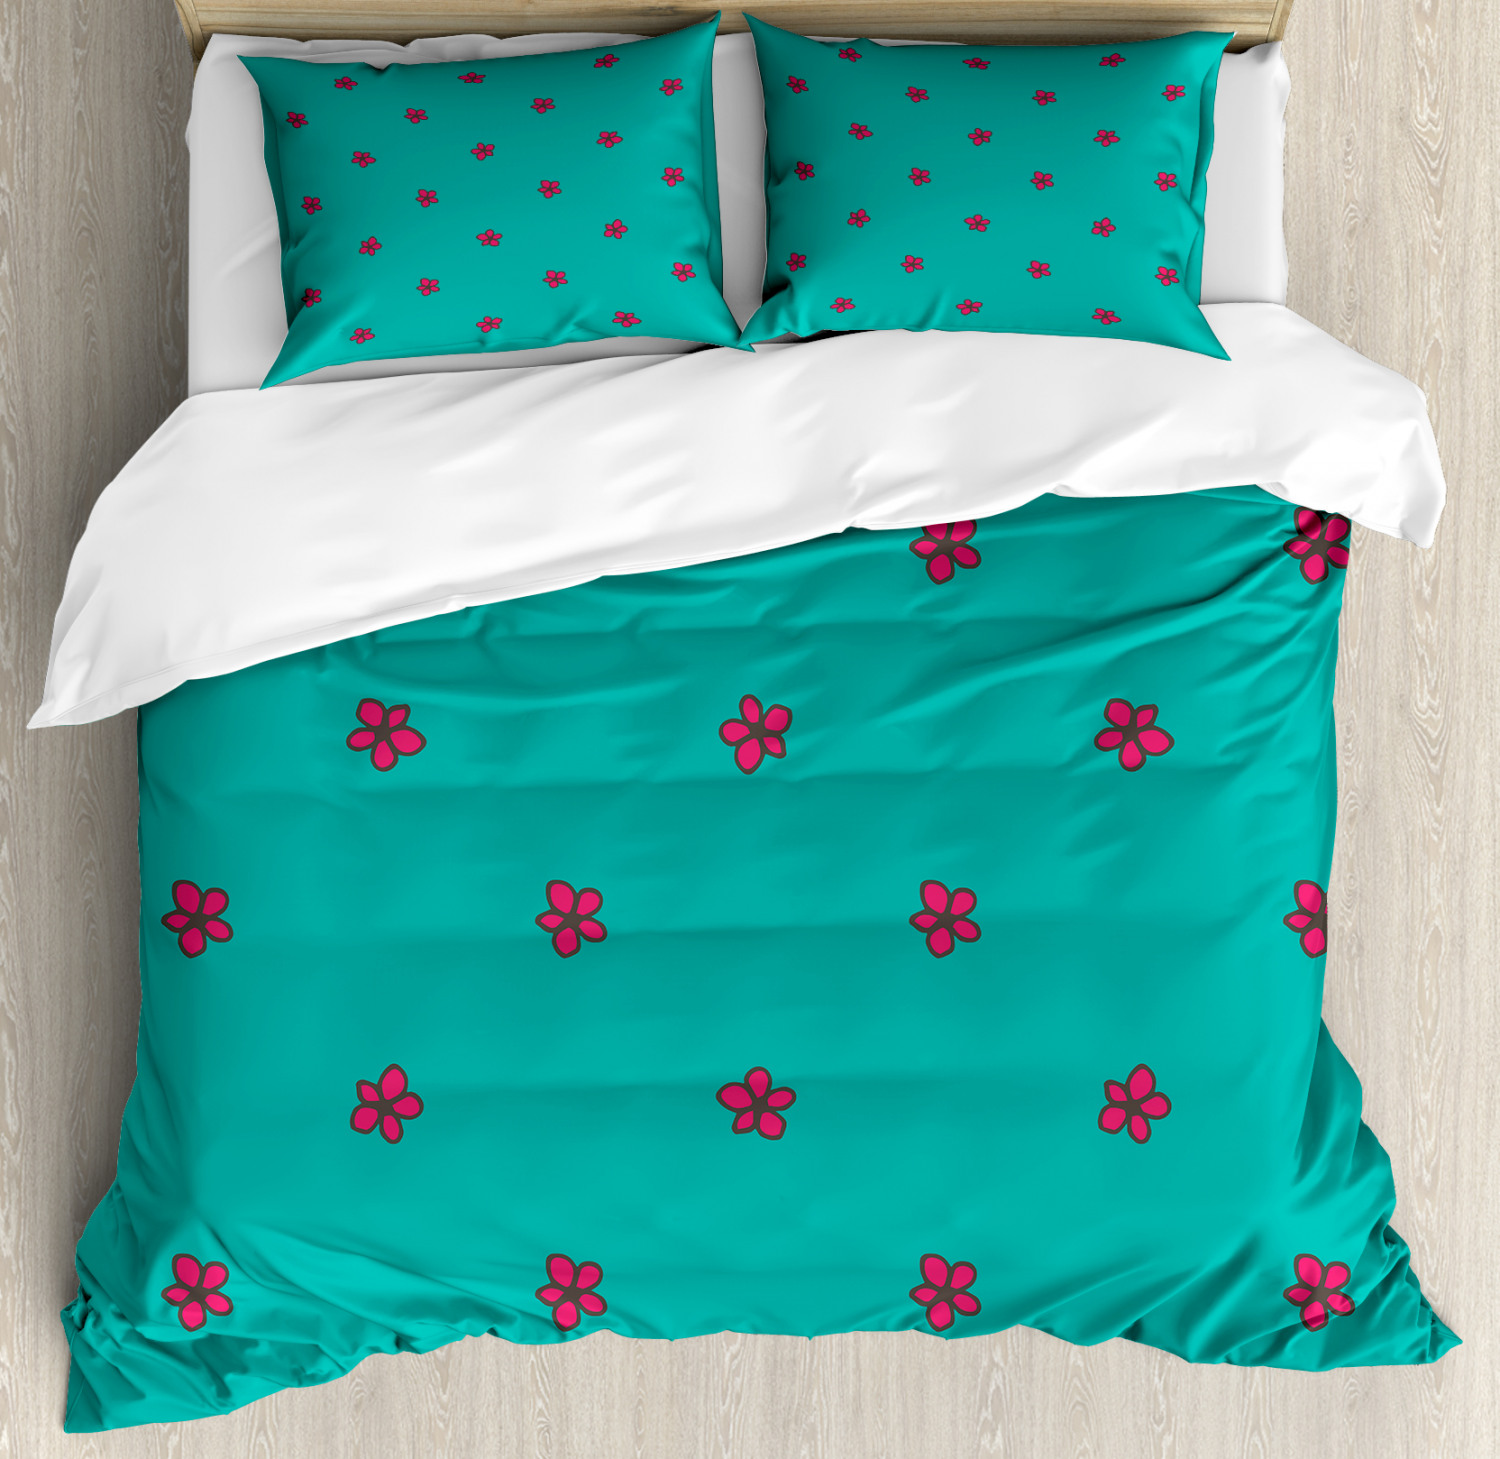 teal queen size duvet cover set hand drawn pink wild flowers pattern on teal background flora theme nature inspired decorative 3 piece bedding set